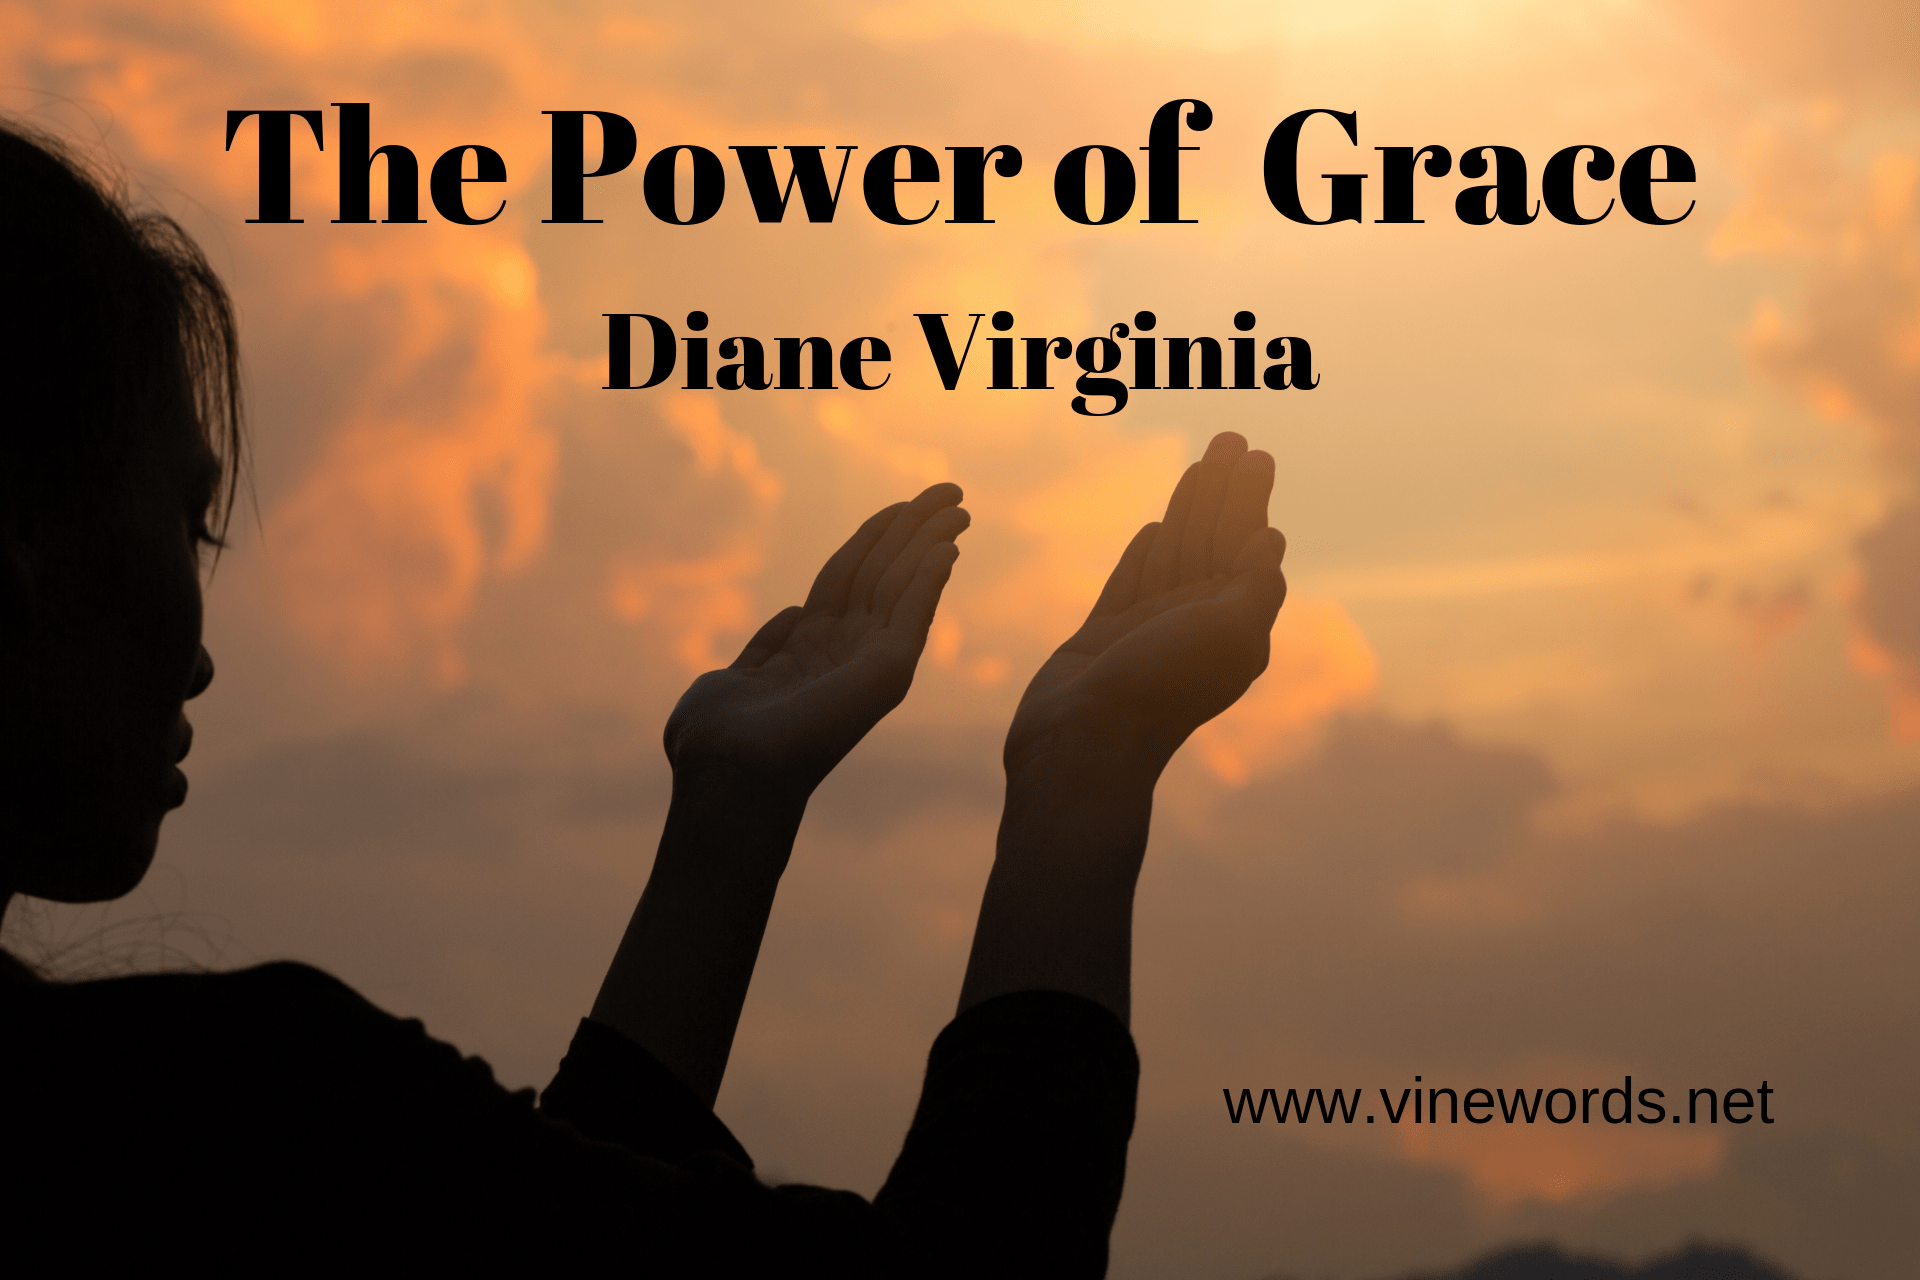 Diane Virginia: The Power of Grace